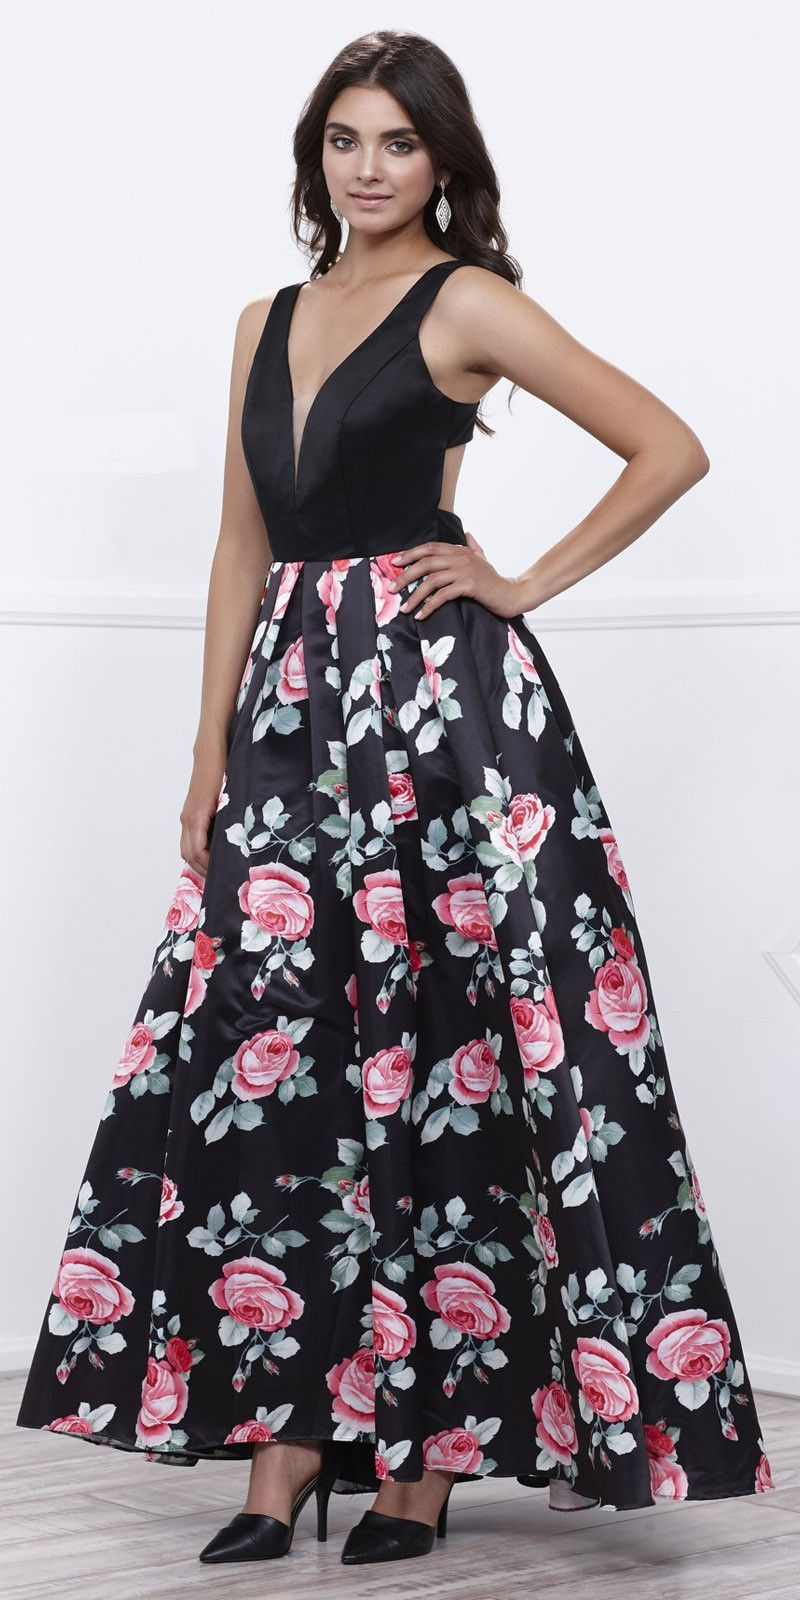 04fef428399 Cut-Out Back Black V-Neck Floral Print Pleated Skirt Prom Gown ...